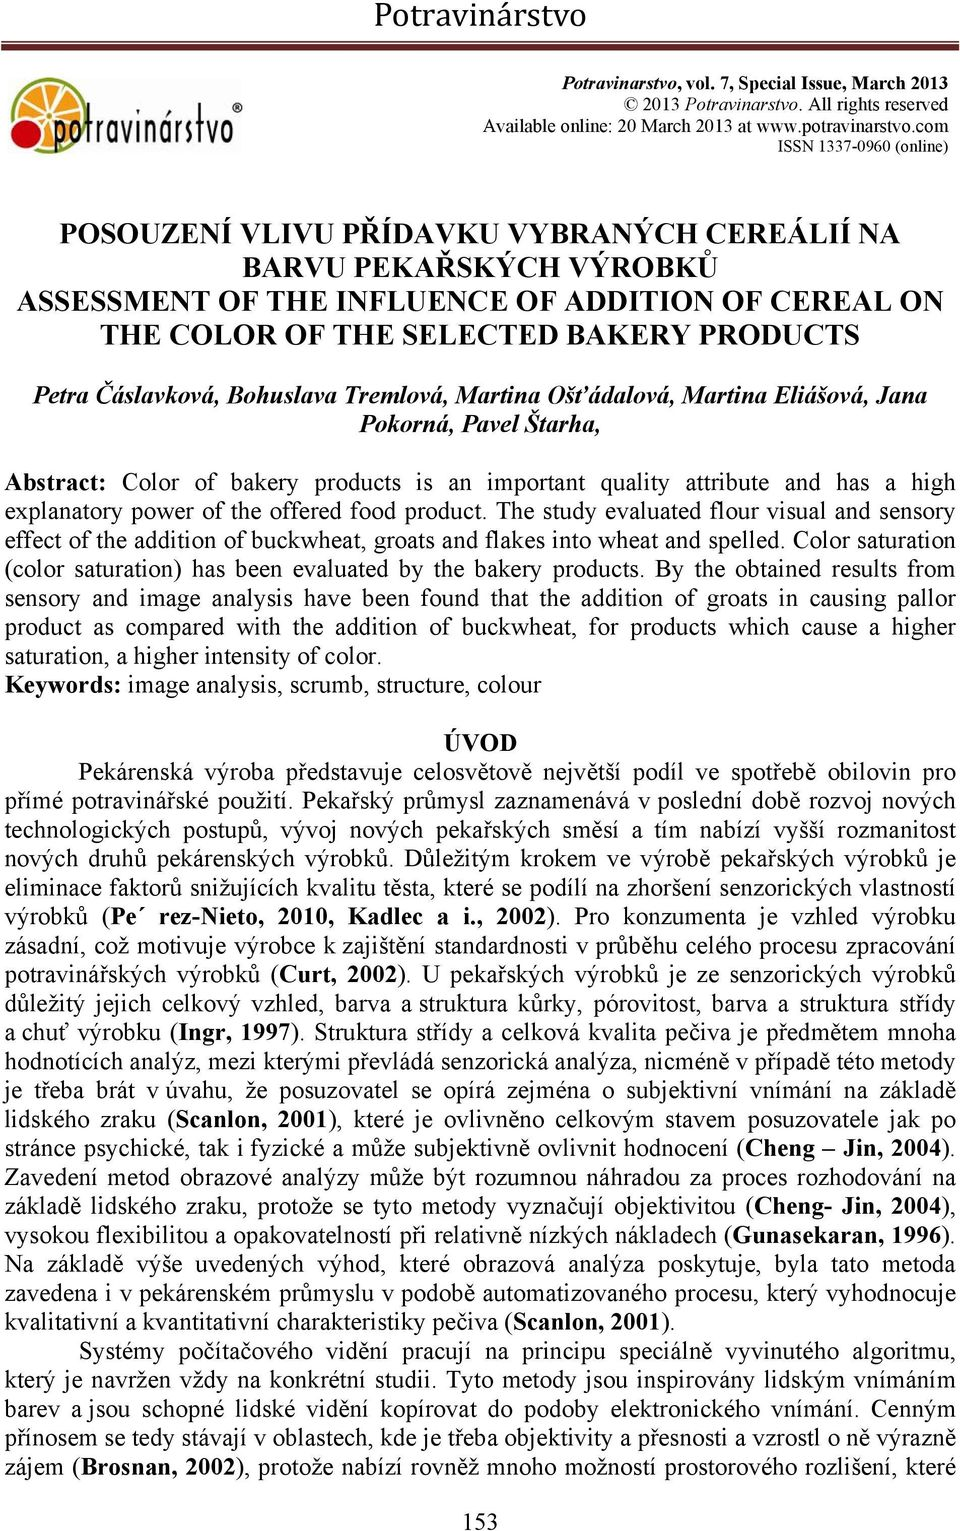 Petra Čáslavková, Bohuslava Tremlová, Martina Ošťádalová, Martina Eliášová, Jana Pokorná, Pavel Štarha, Abstract: Color of bakery products is an important quality attribute and has a high explanatory